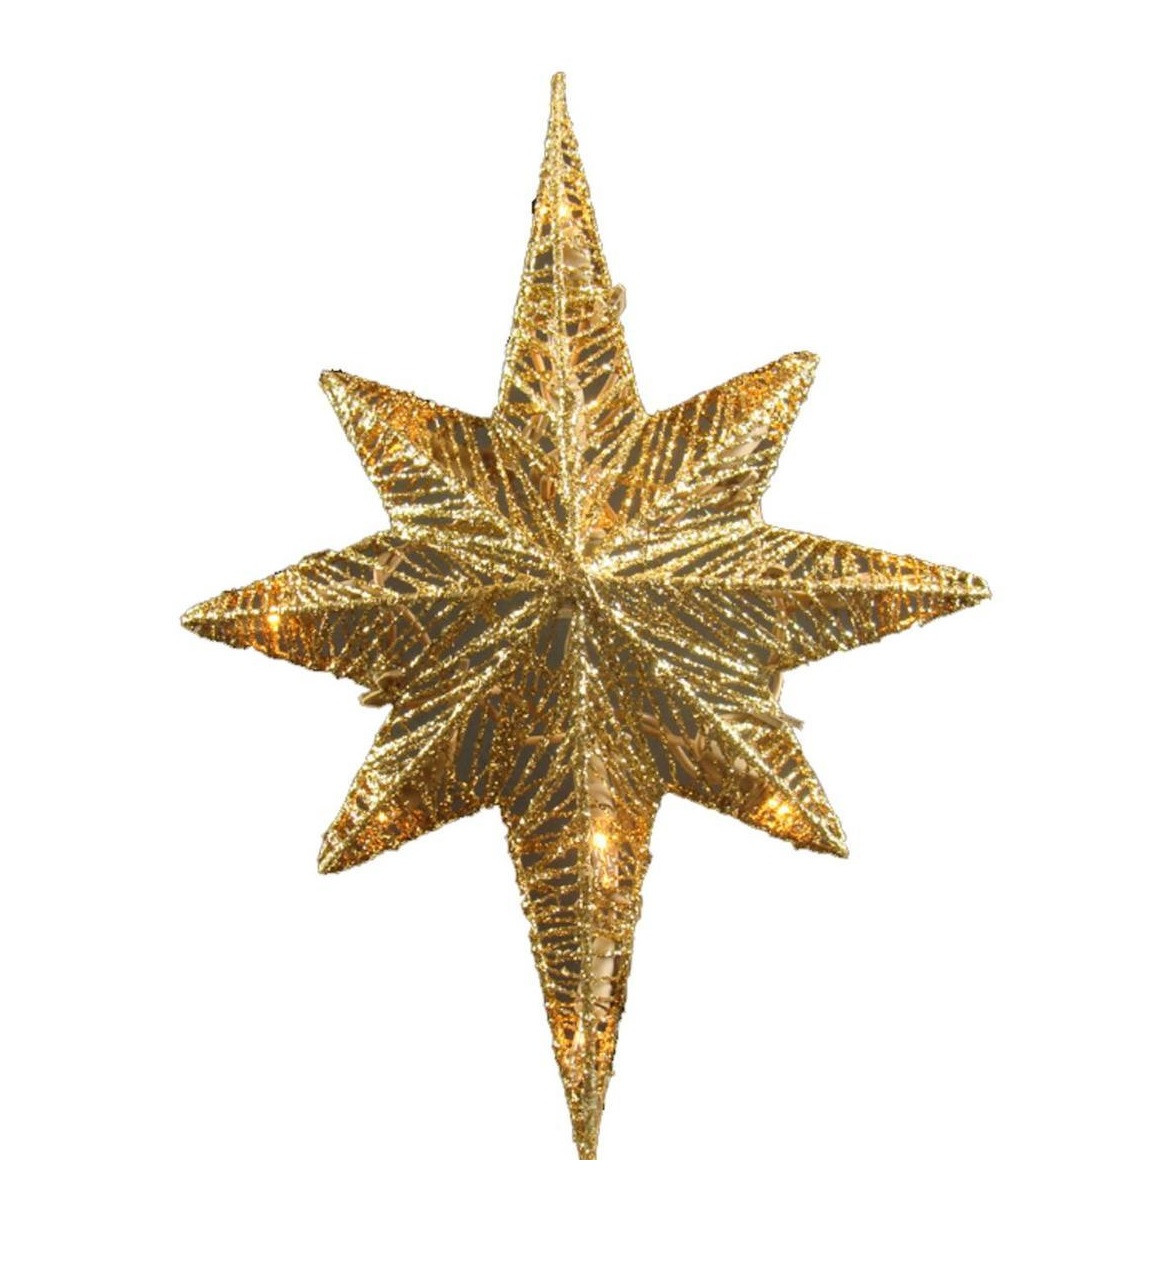 12 Quot Lighted Gold Star Of Bethlehem Tree Topper Clear